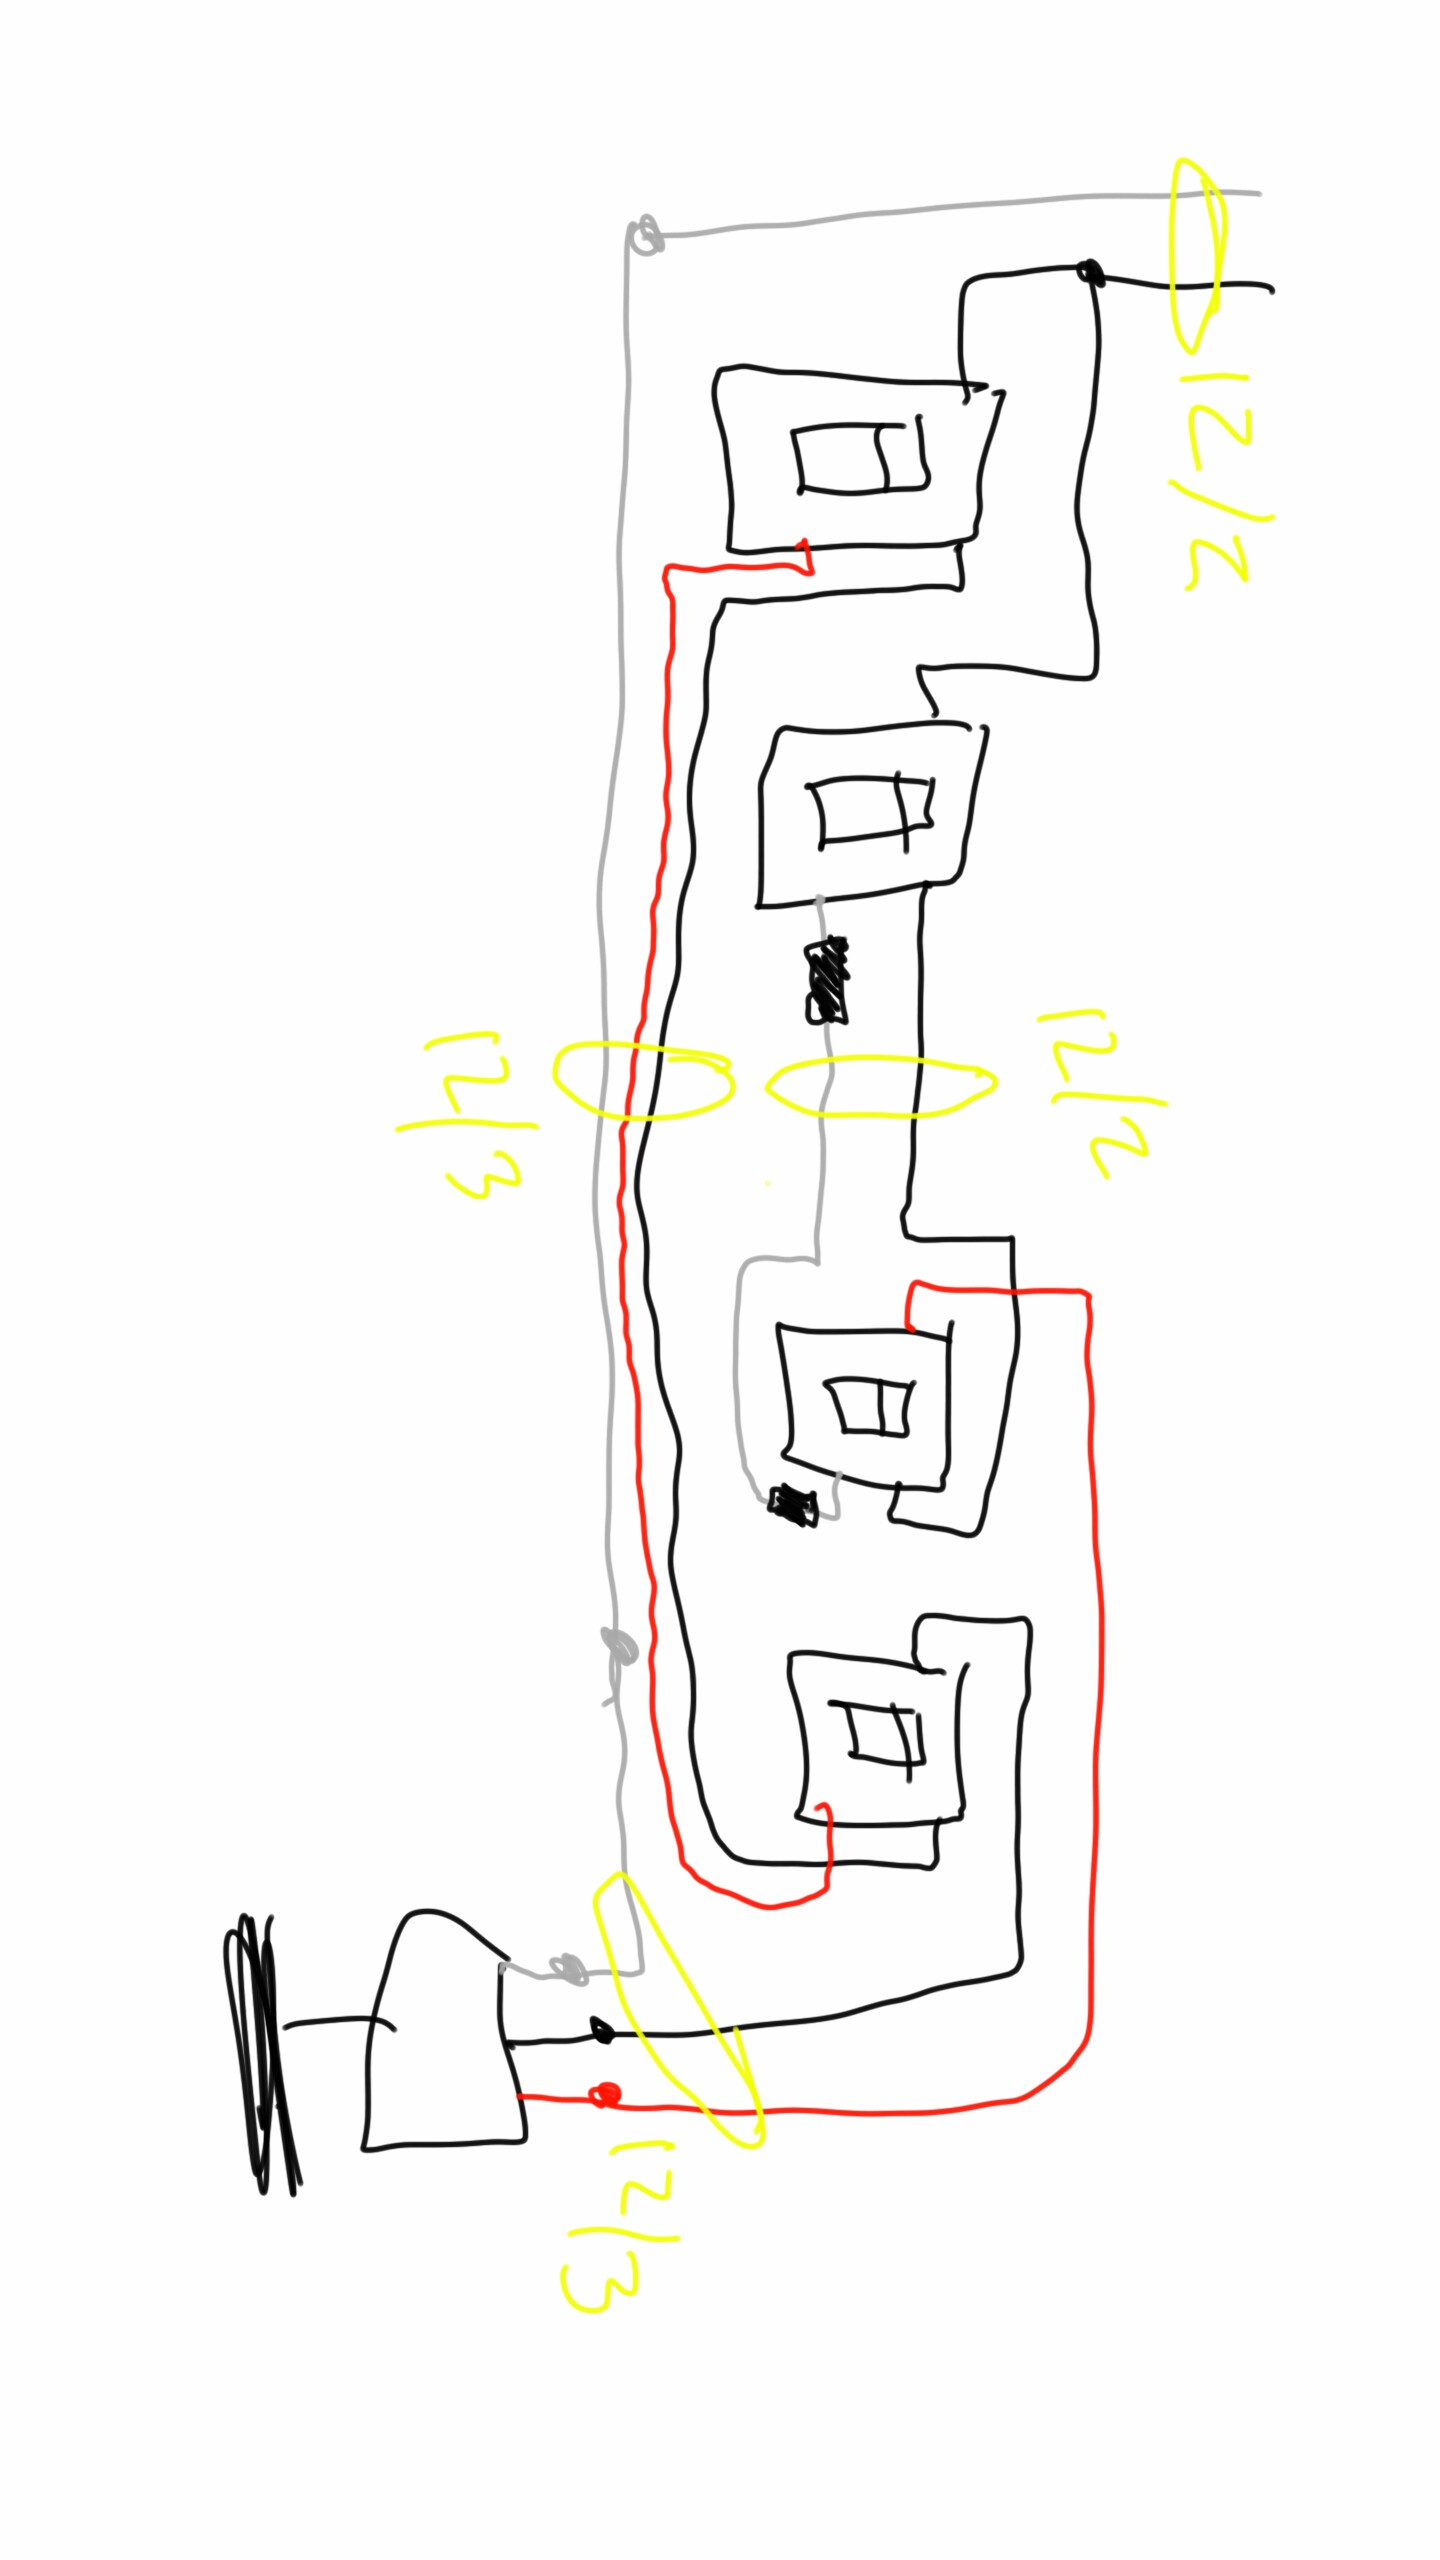 Wiring Ceiling Fan With Two Switches : wiring, ceiling, switches, Needed, Double, 3-way, Switch, Fan/light, Improvement, Stack, Exchange